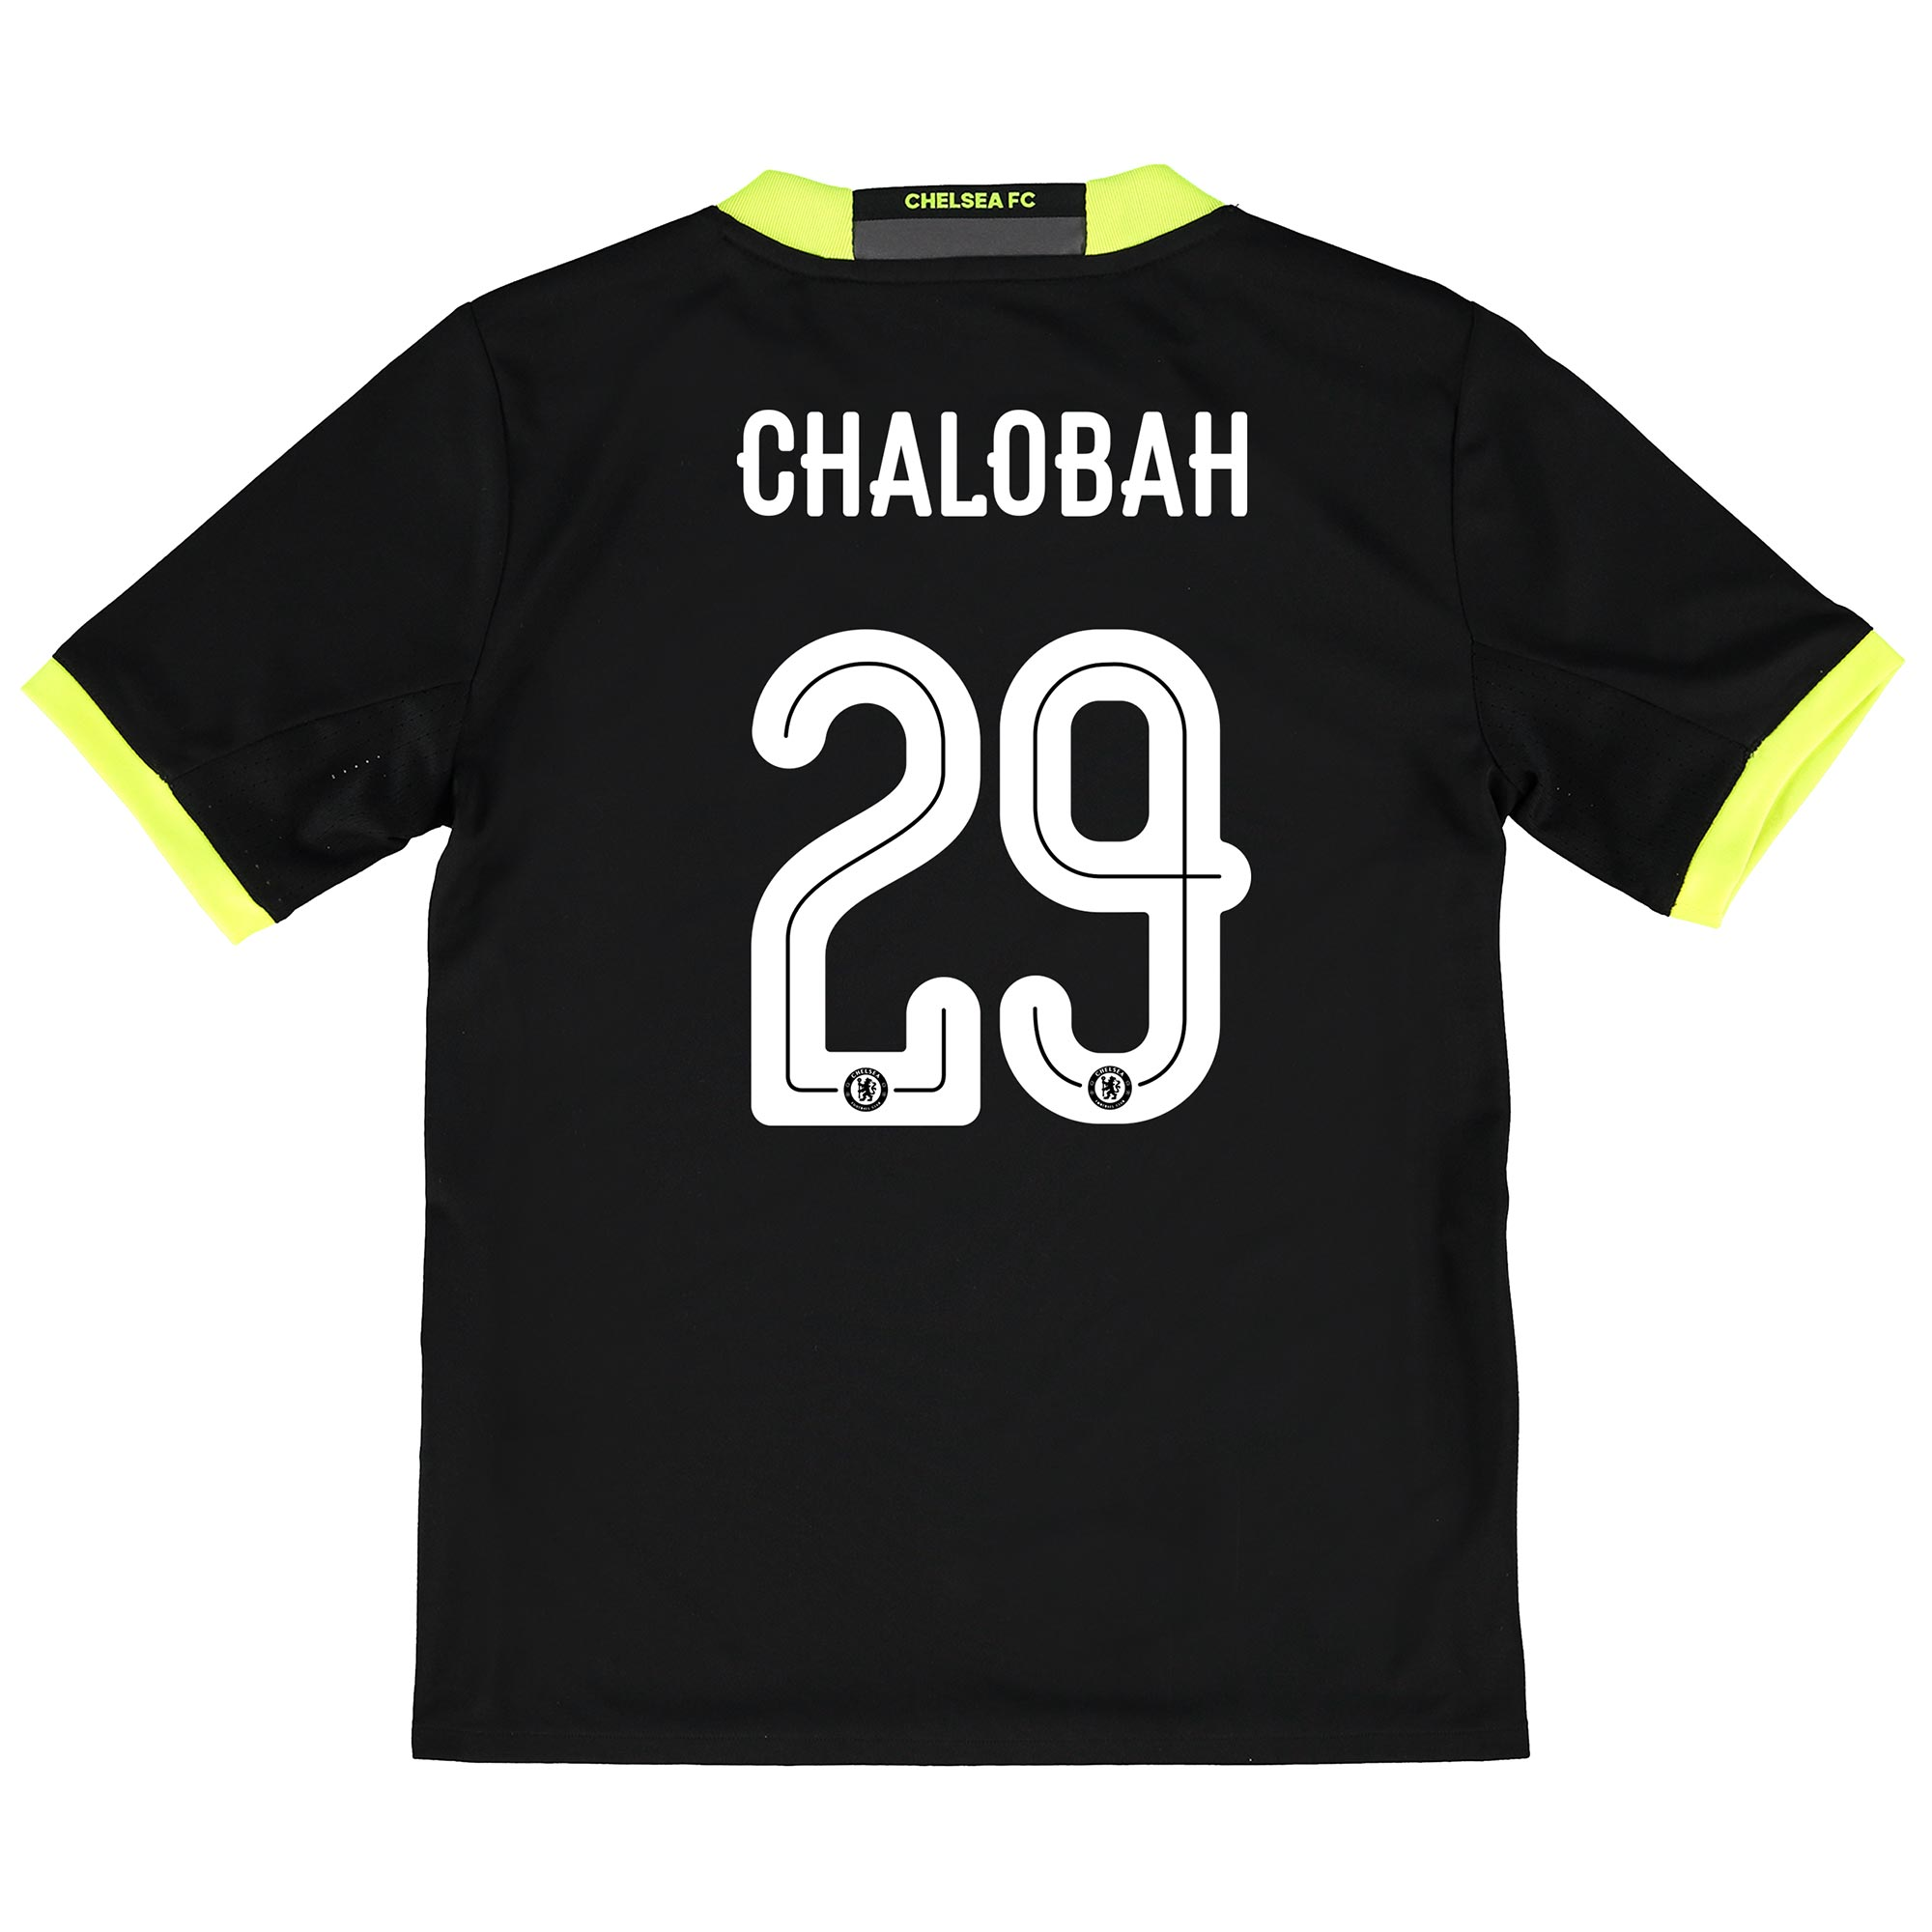 Chelsea Linear Away Shirt 16-17 - Kids with Chalobah 29 printing